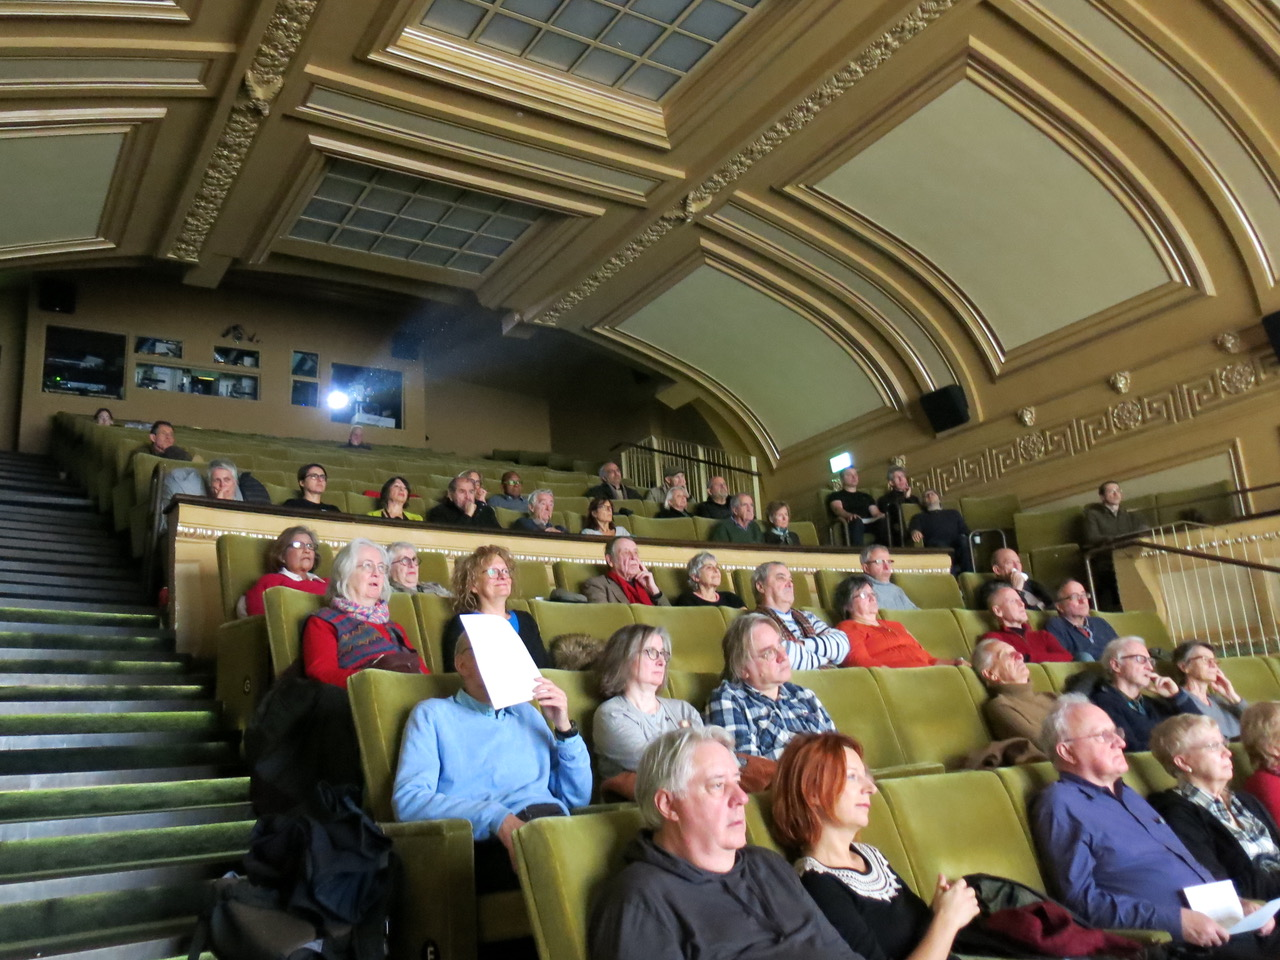 The audience have taken their seats ahead of the screening